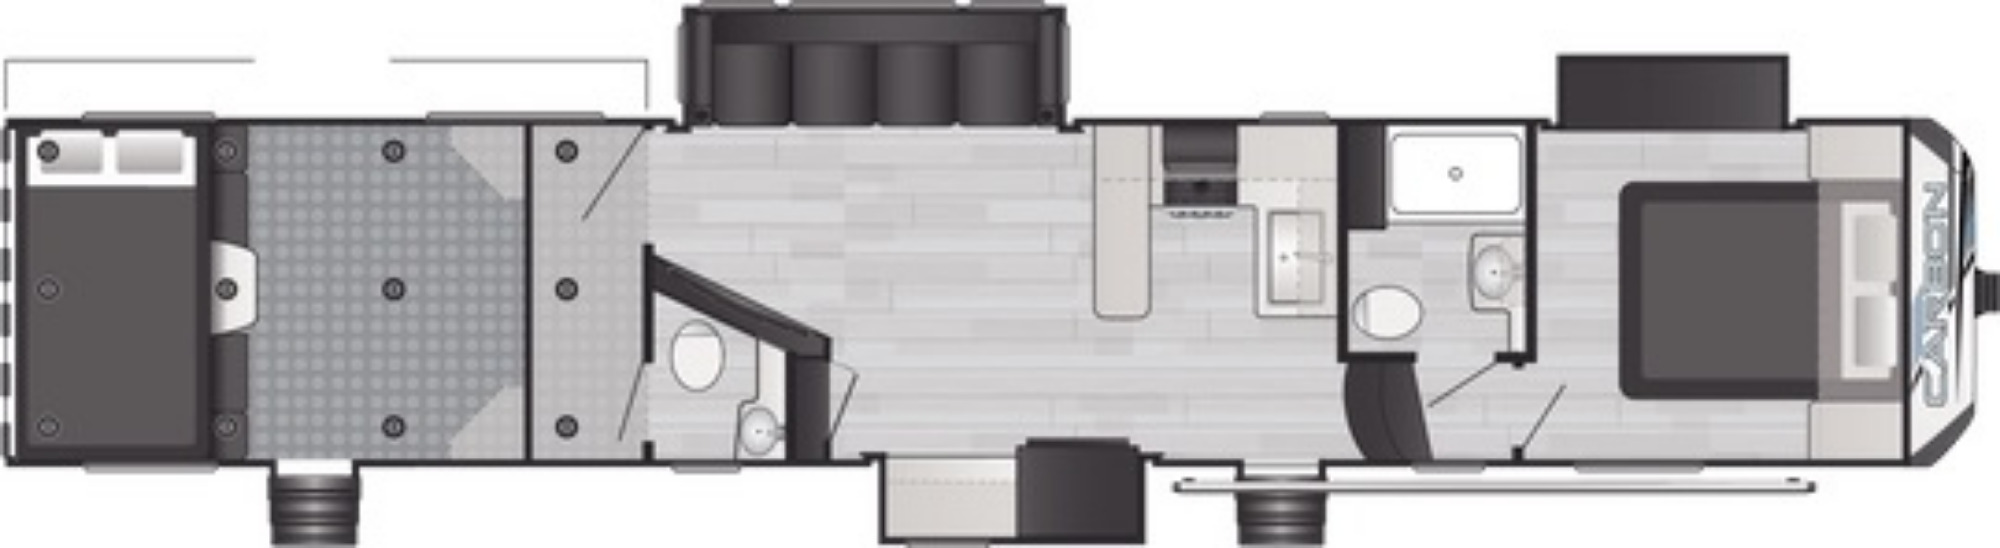 View Floor Plan for 2021 KEYSTONE CARBON 418